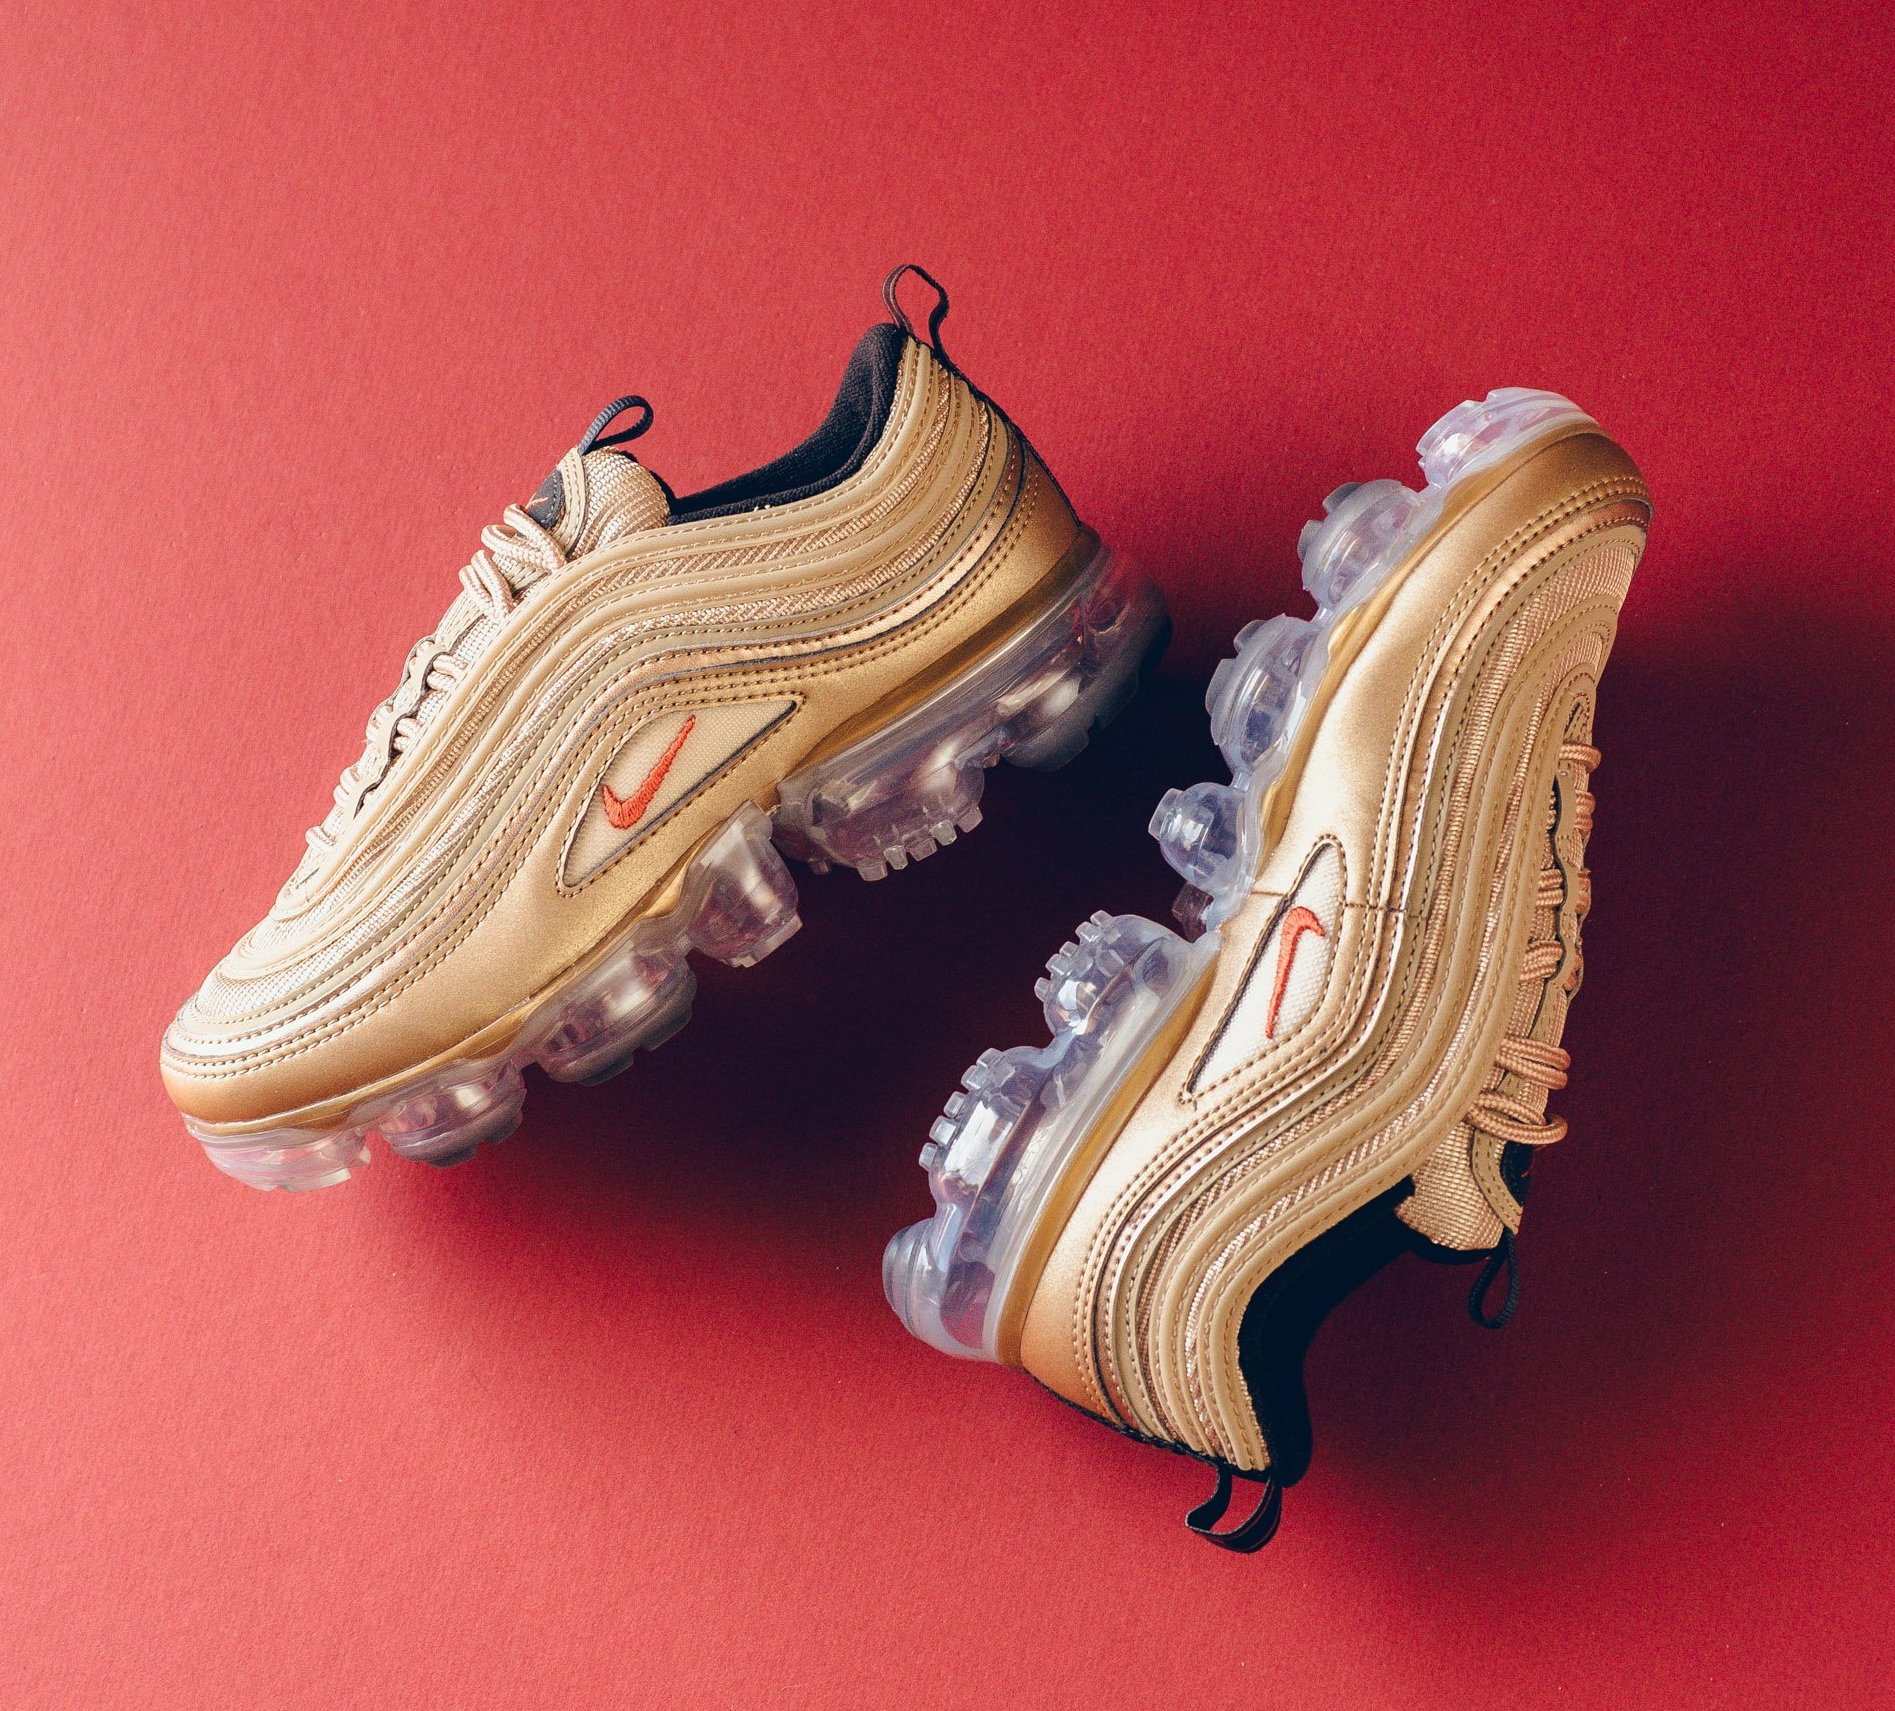 Now Available: Women's Nike Air VaporMax '97